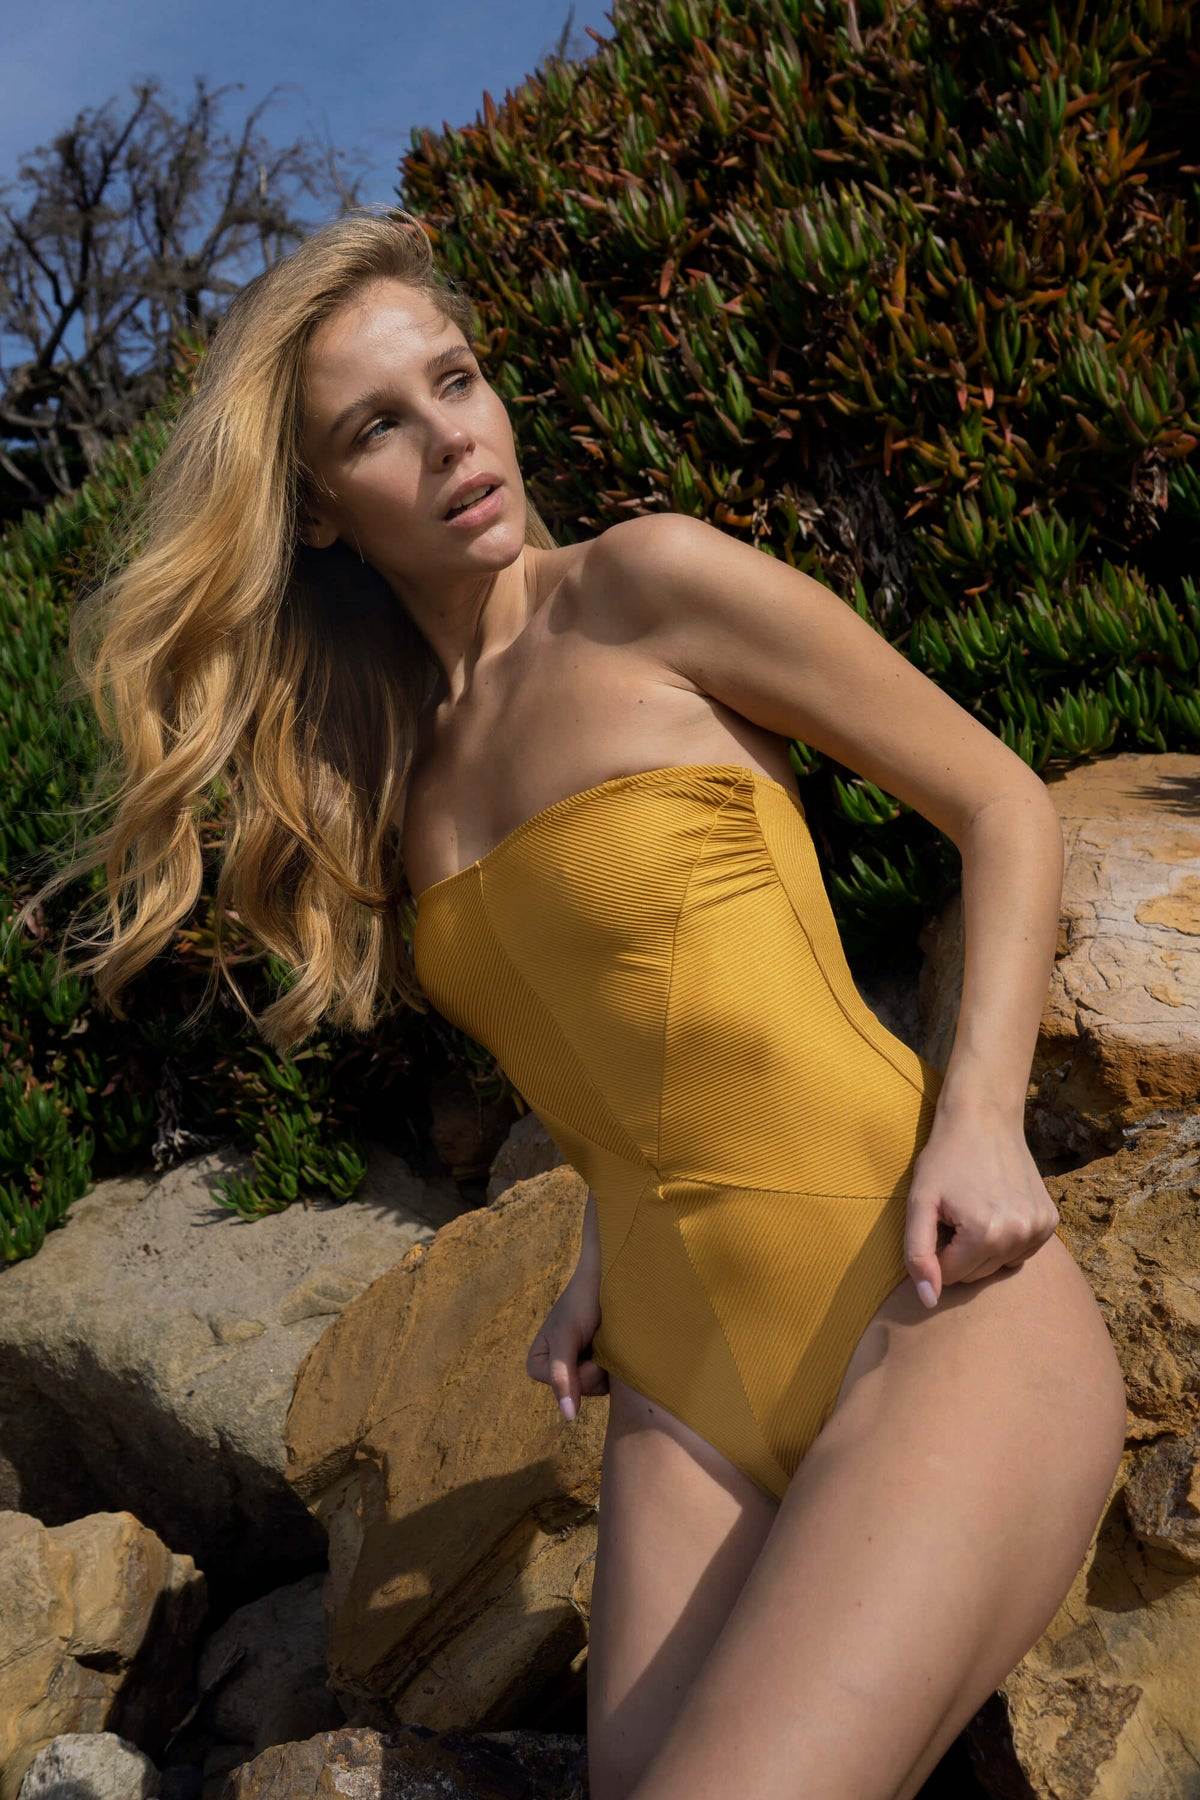 Model wears the Hannah Swimsuit in Ribbed Gold on the beach in Malibu, CA.